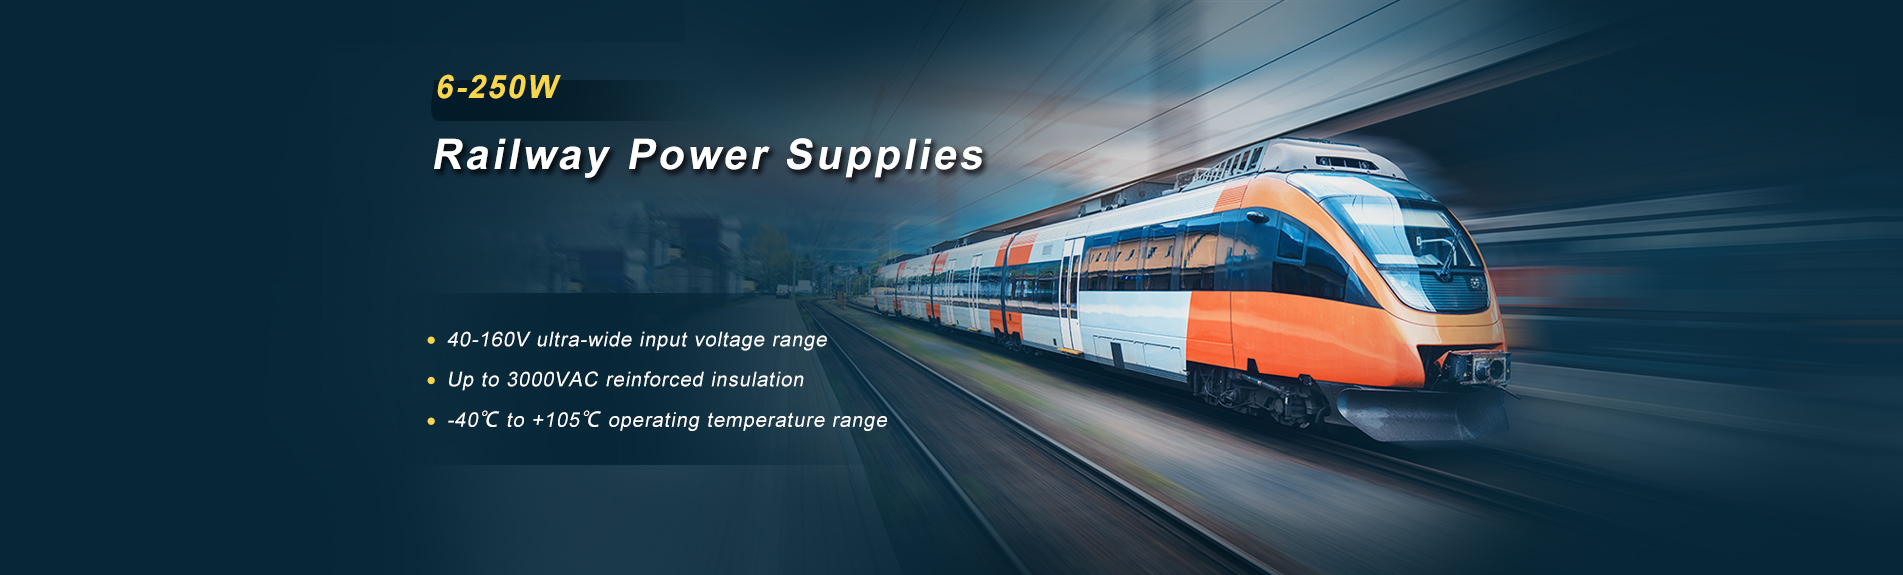 6-250W Railway Power Supplies